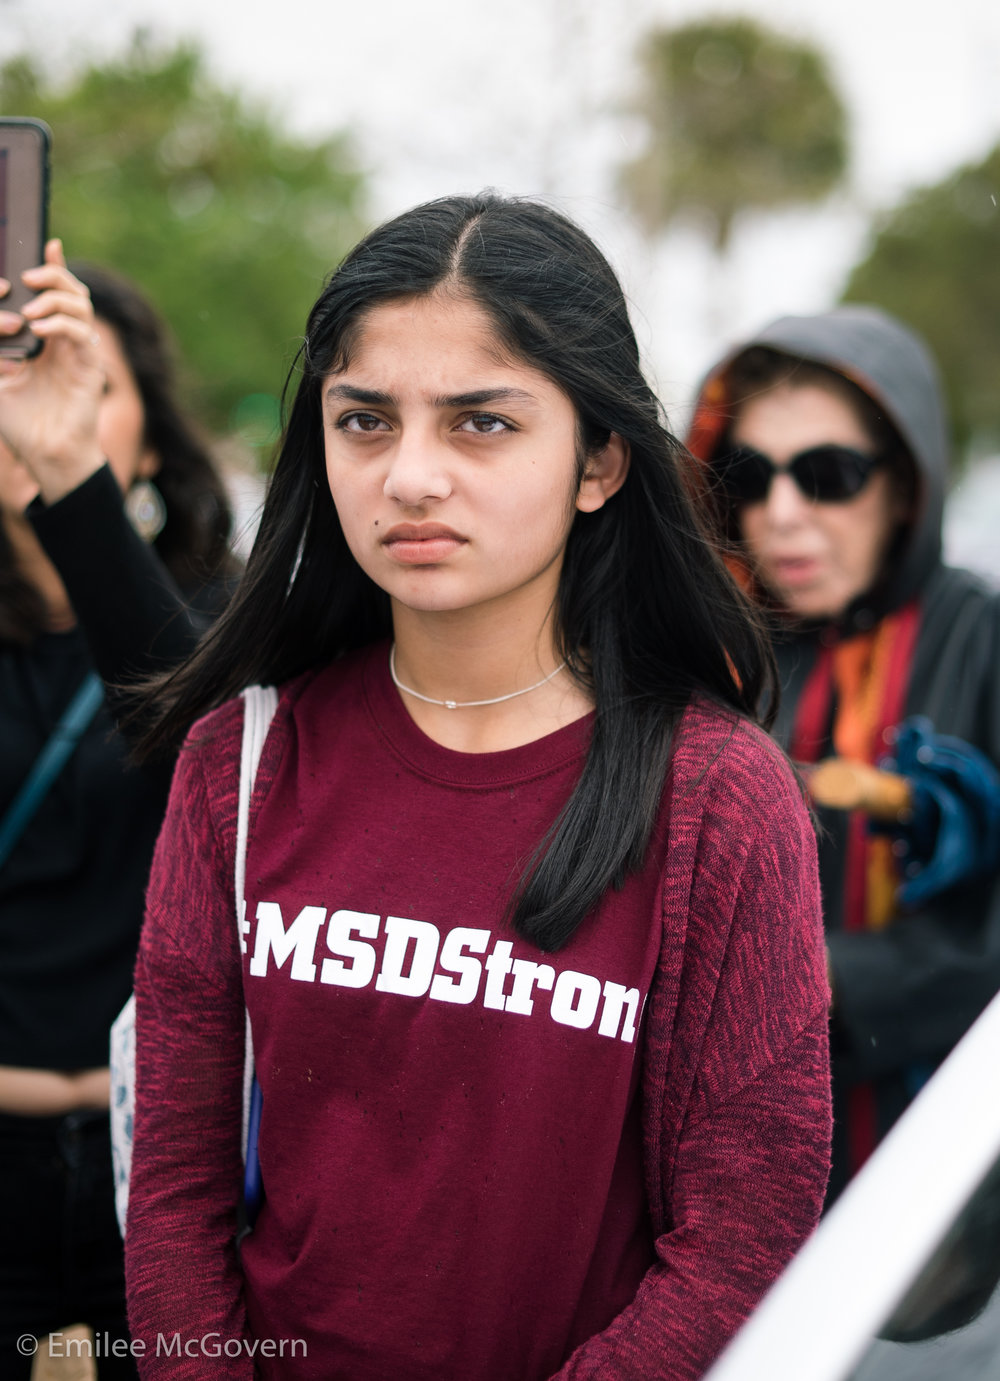 Marjory Stoneman Douglas School Shooting